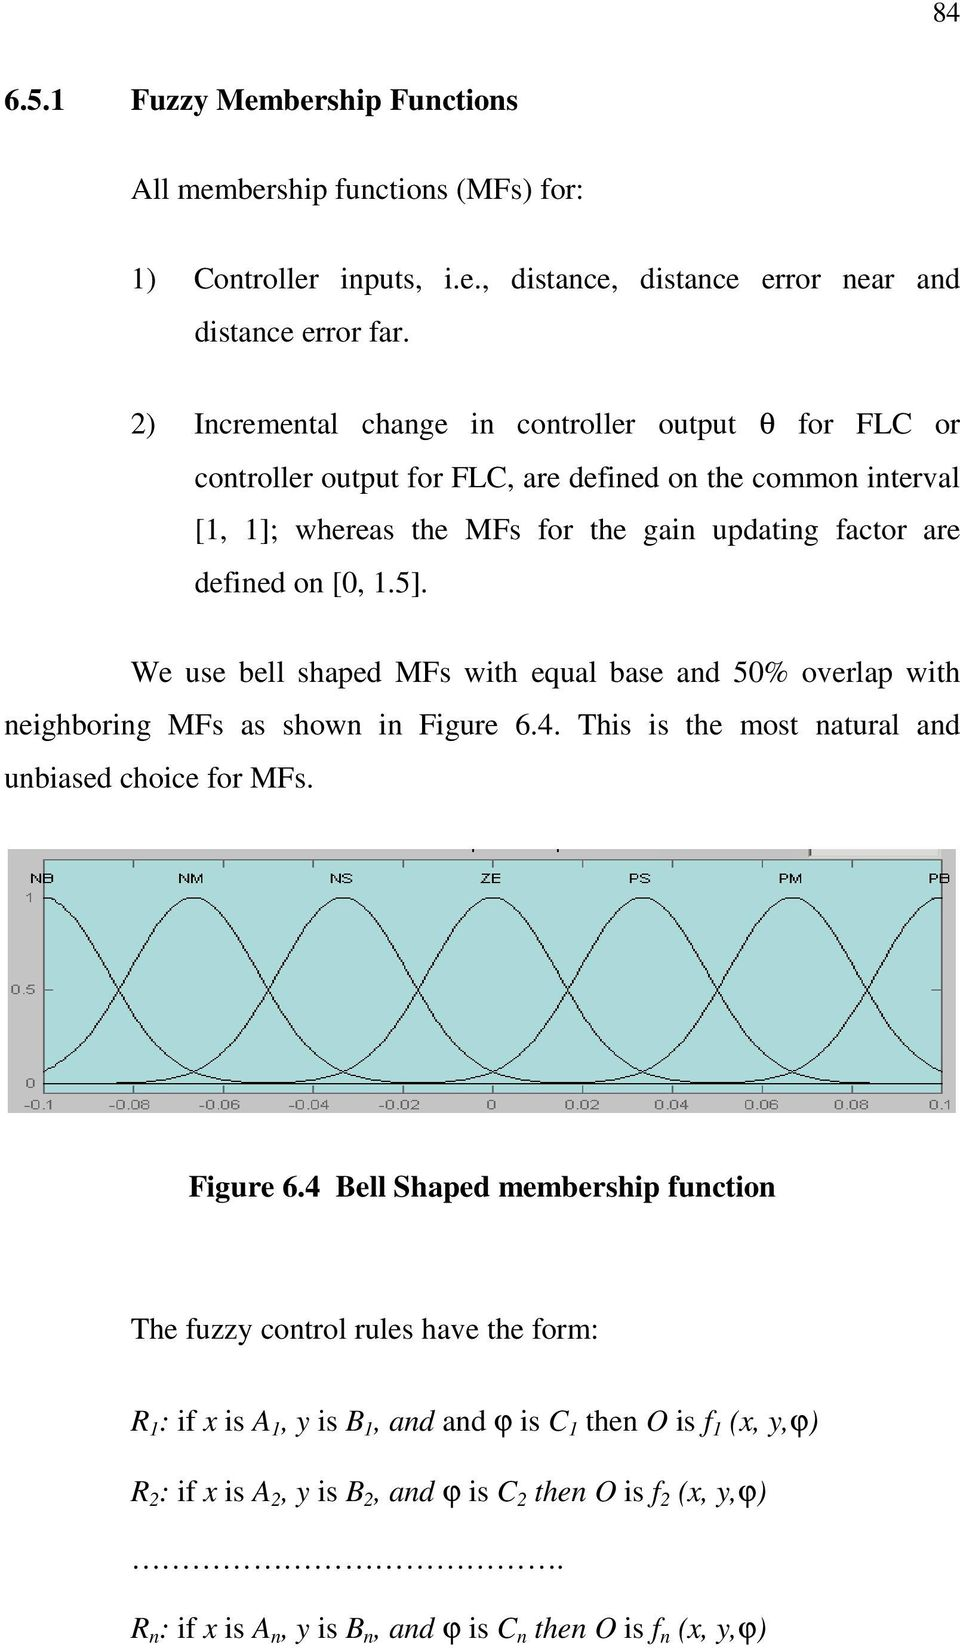 We use bell shaped MFs with equal base and 50% overlap with neighboring MFs as shown in Figure 6.